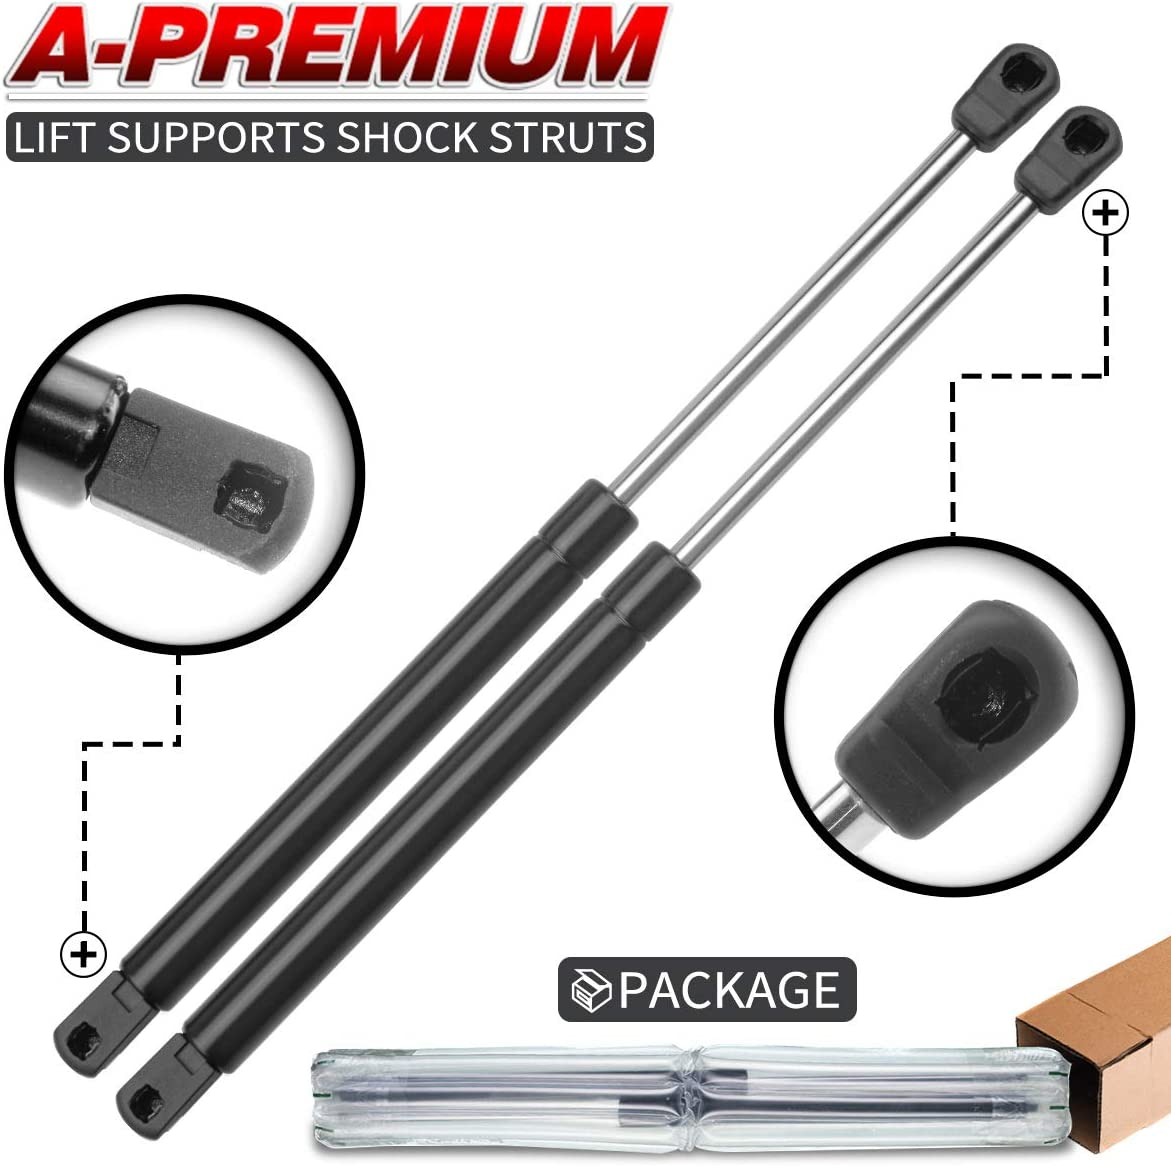 A-Preimum Hood Lift Supports Shock Struts Replacement for Mercury Grand Marquis 1998-2005 Sedan 2-PC Set